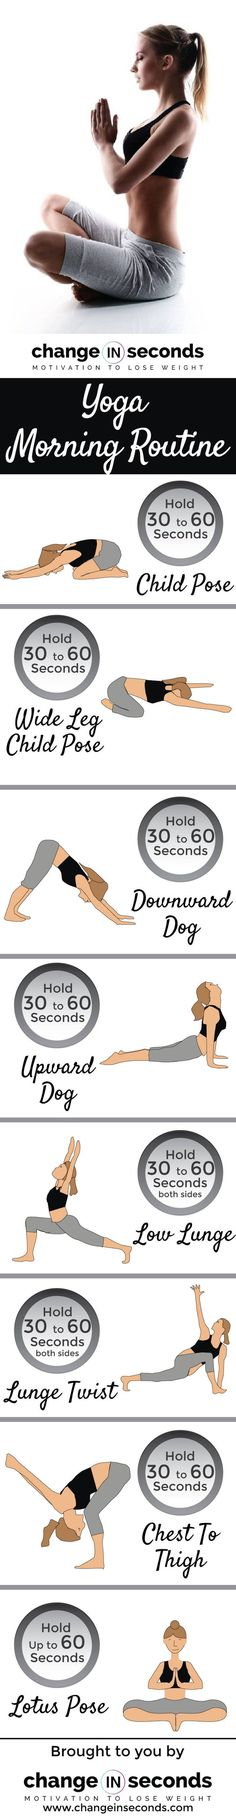 Yoga Morning Routine (Sequence) Download FREE PDF http://amzn.to/2ssKnYB